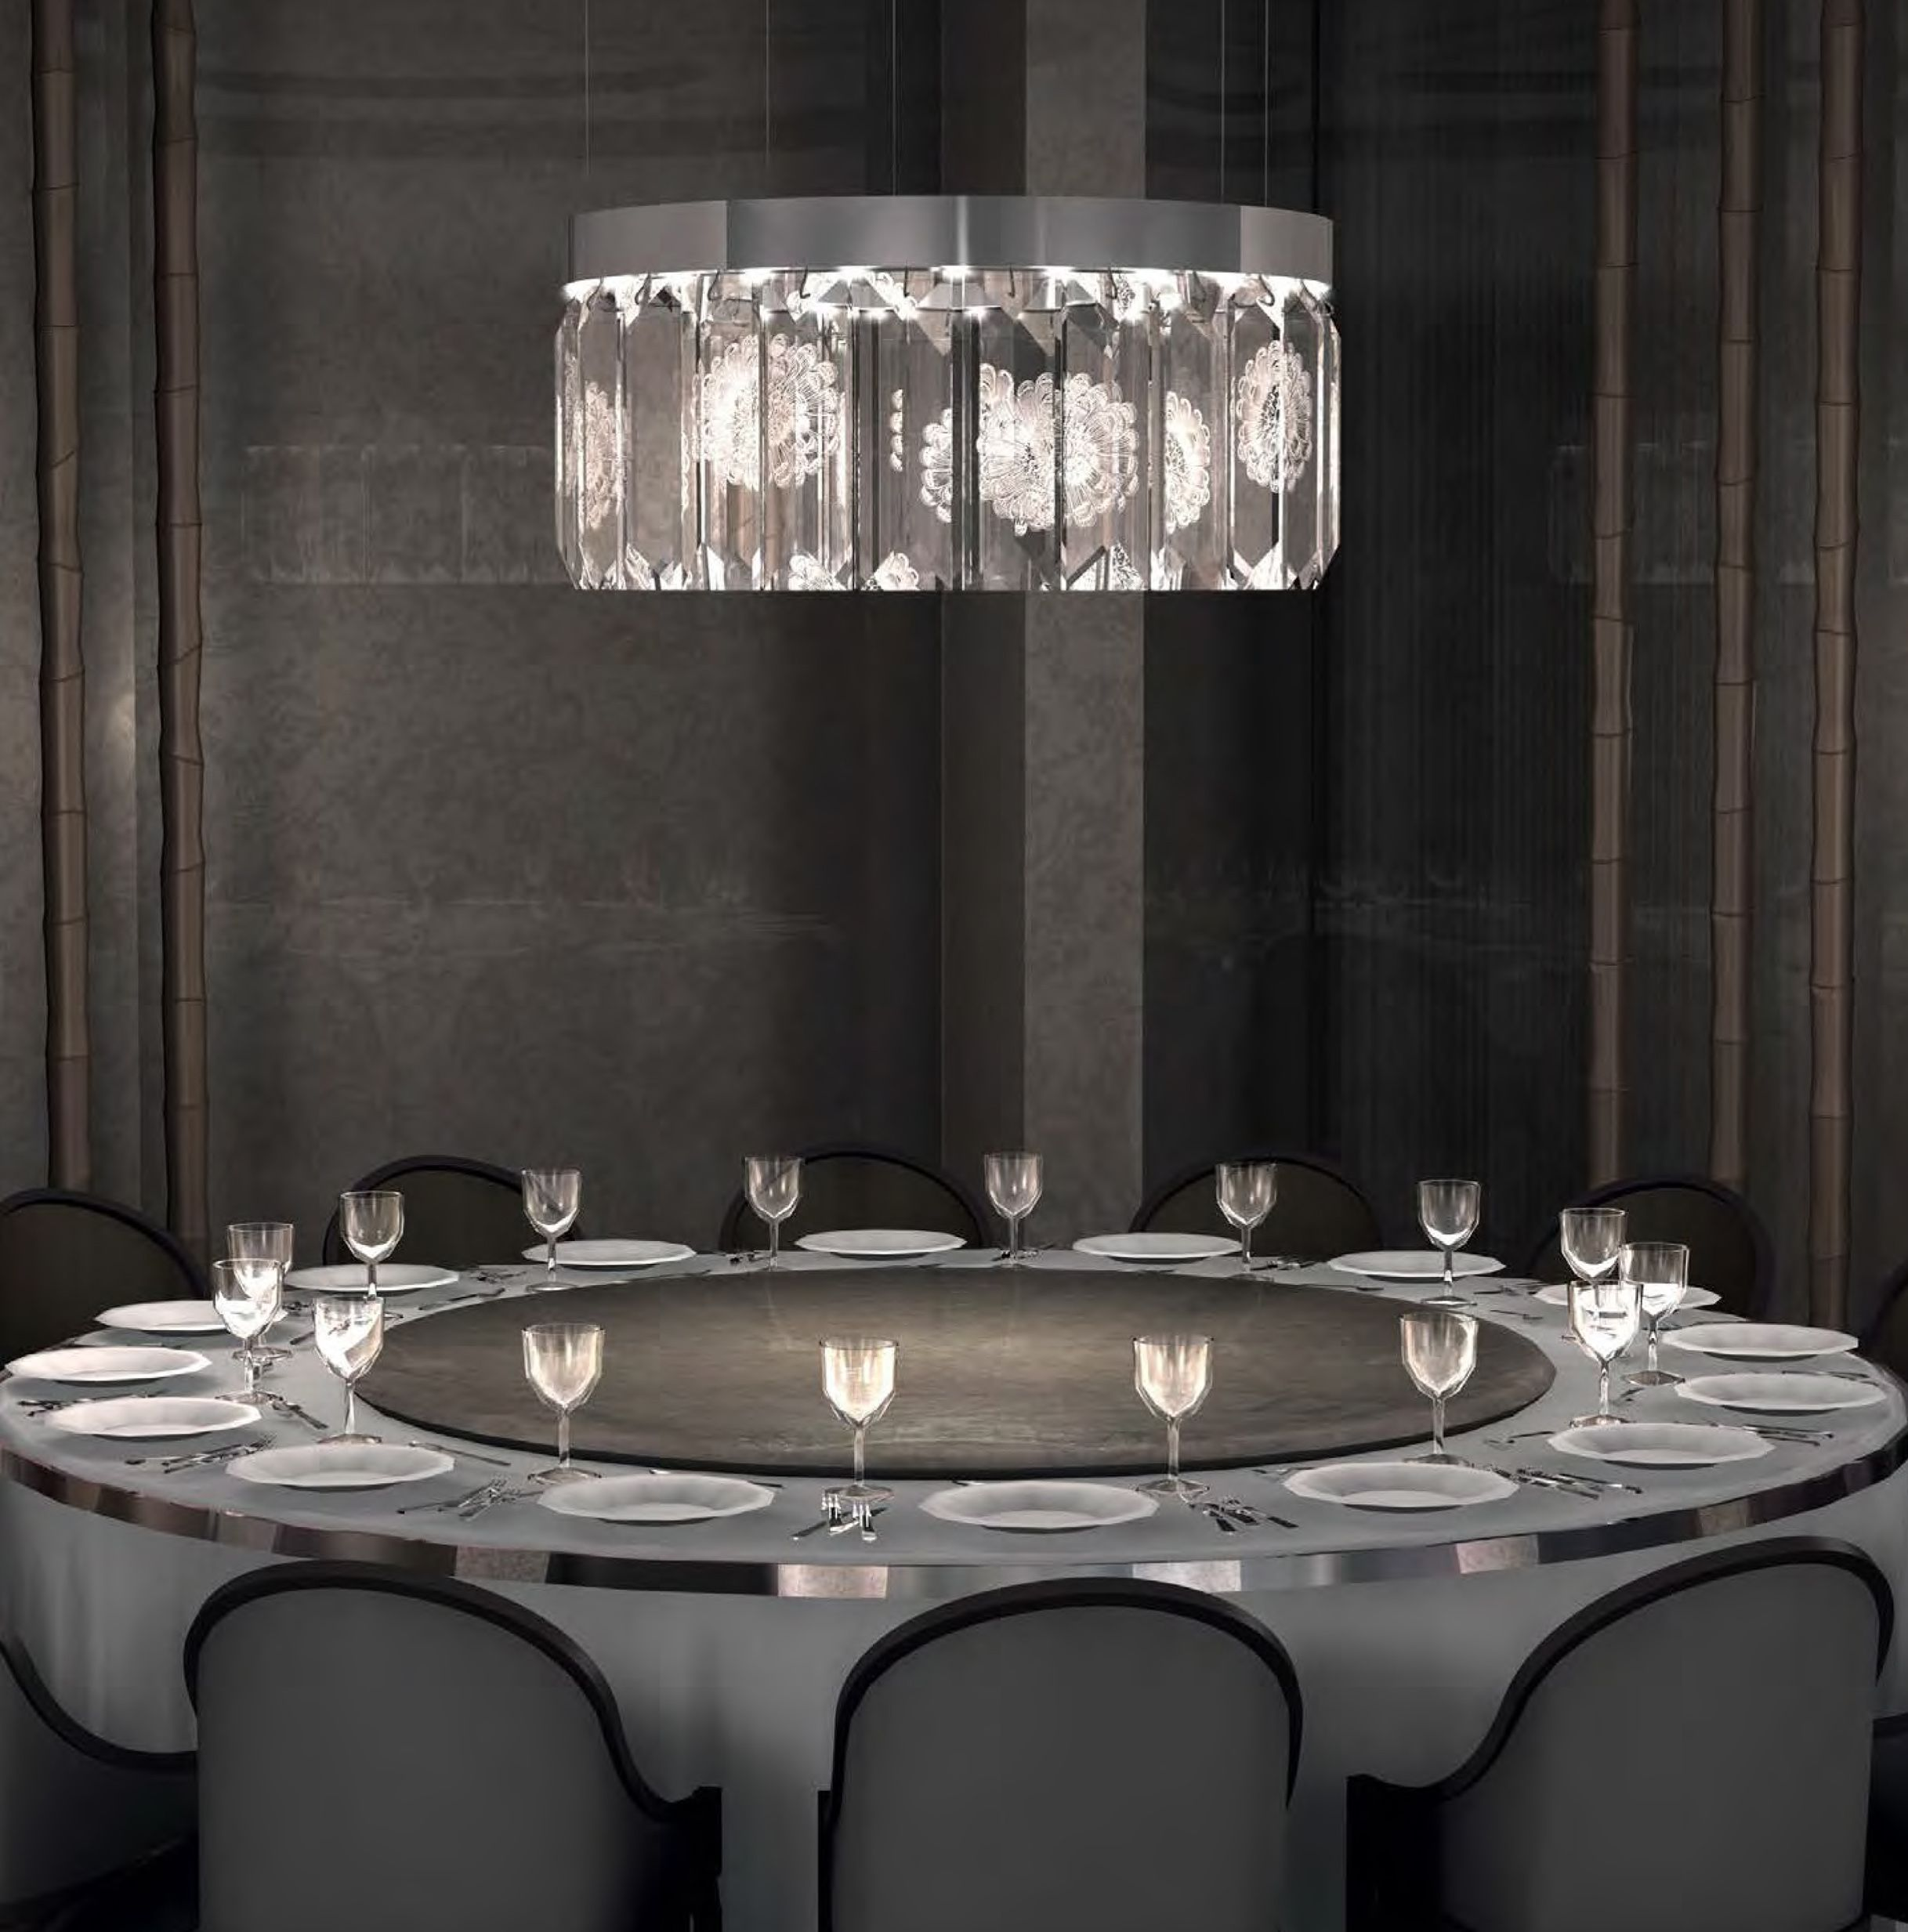 Windfall chandeliers with lalique the serene collection the windfall chandeliers with lalique the serene collection aloadofball Gallery